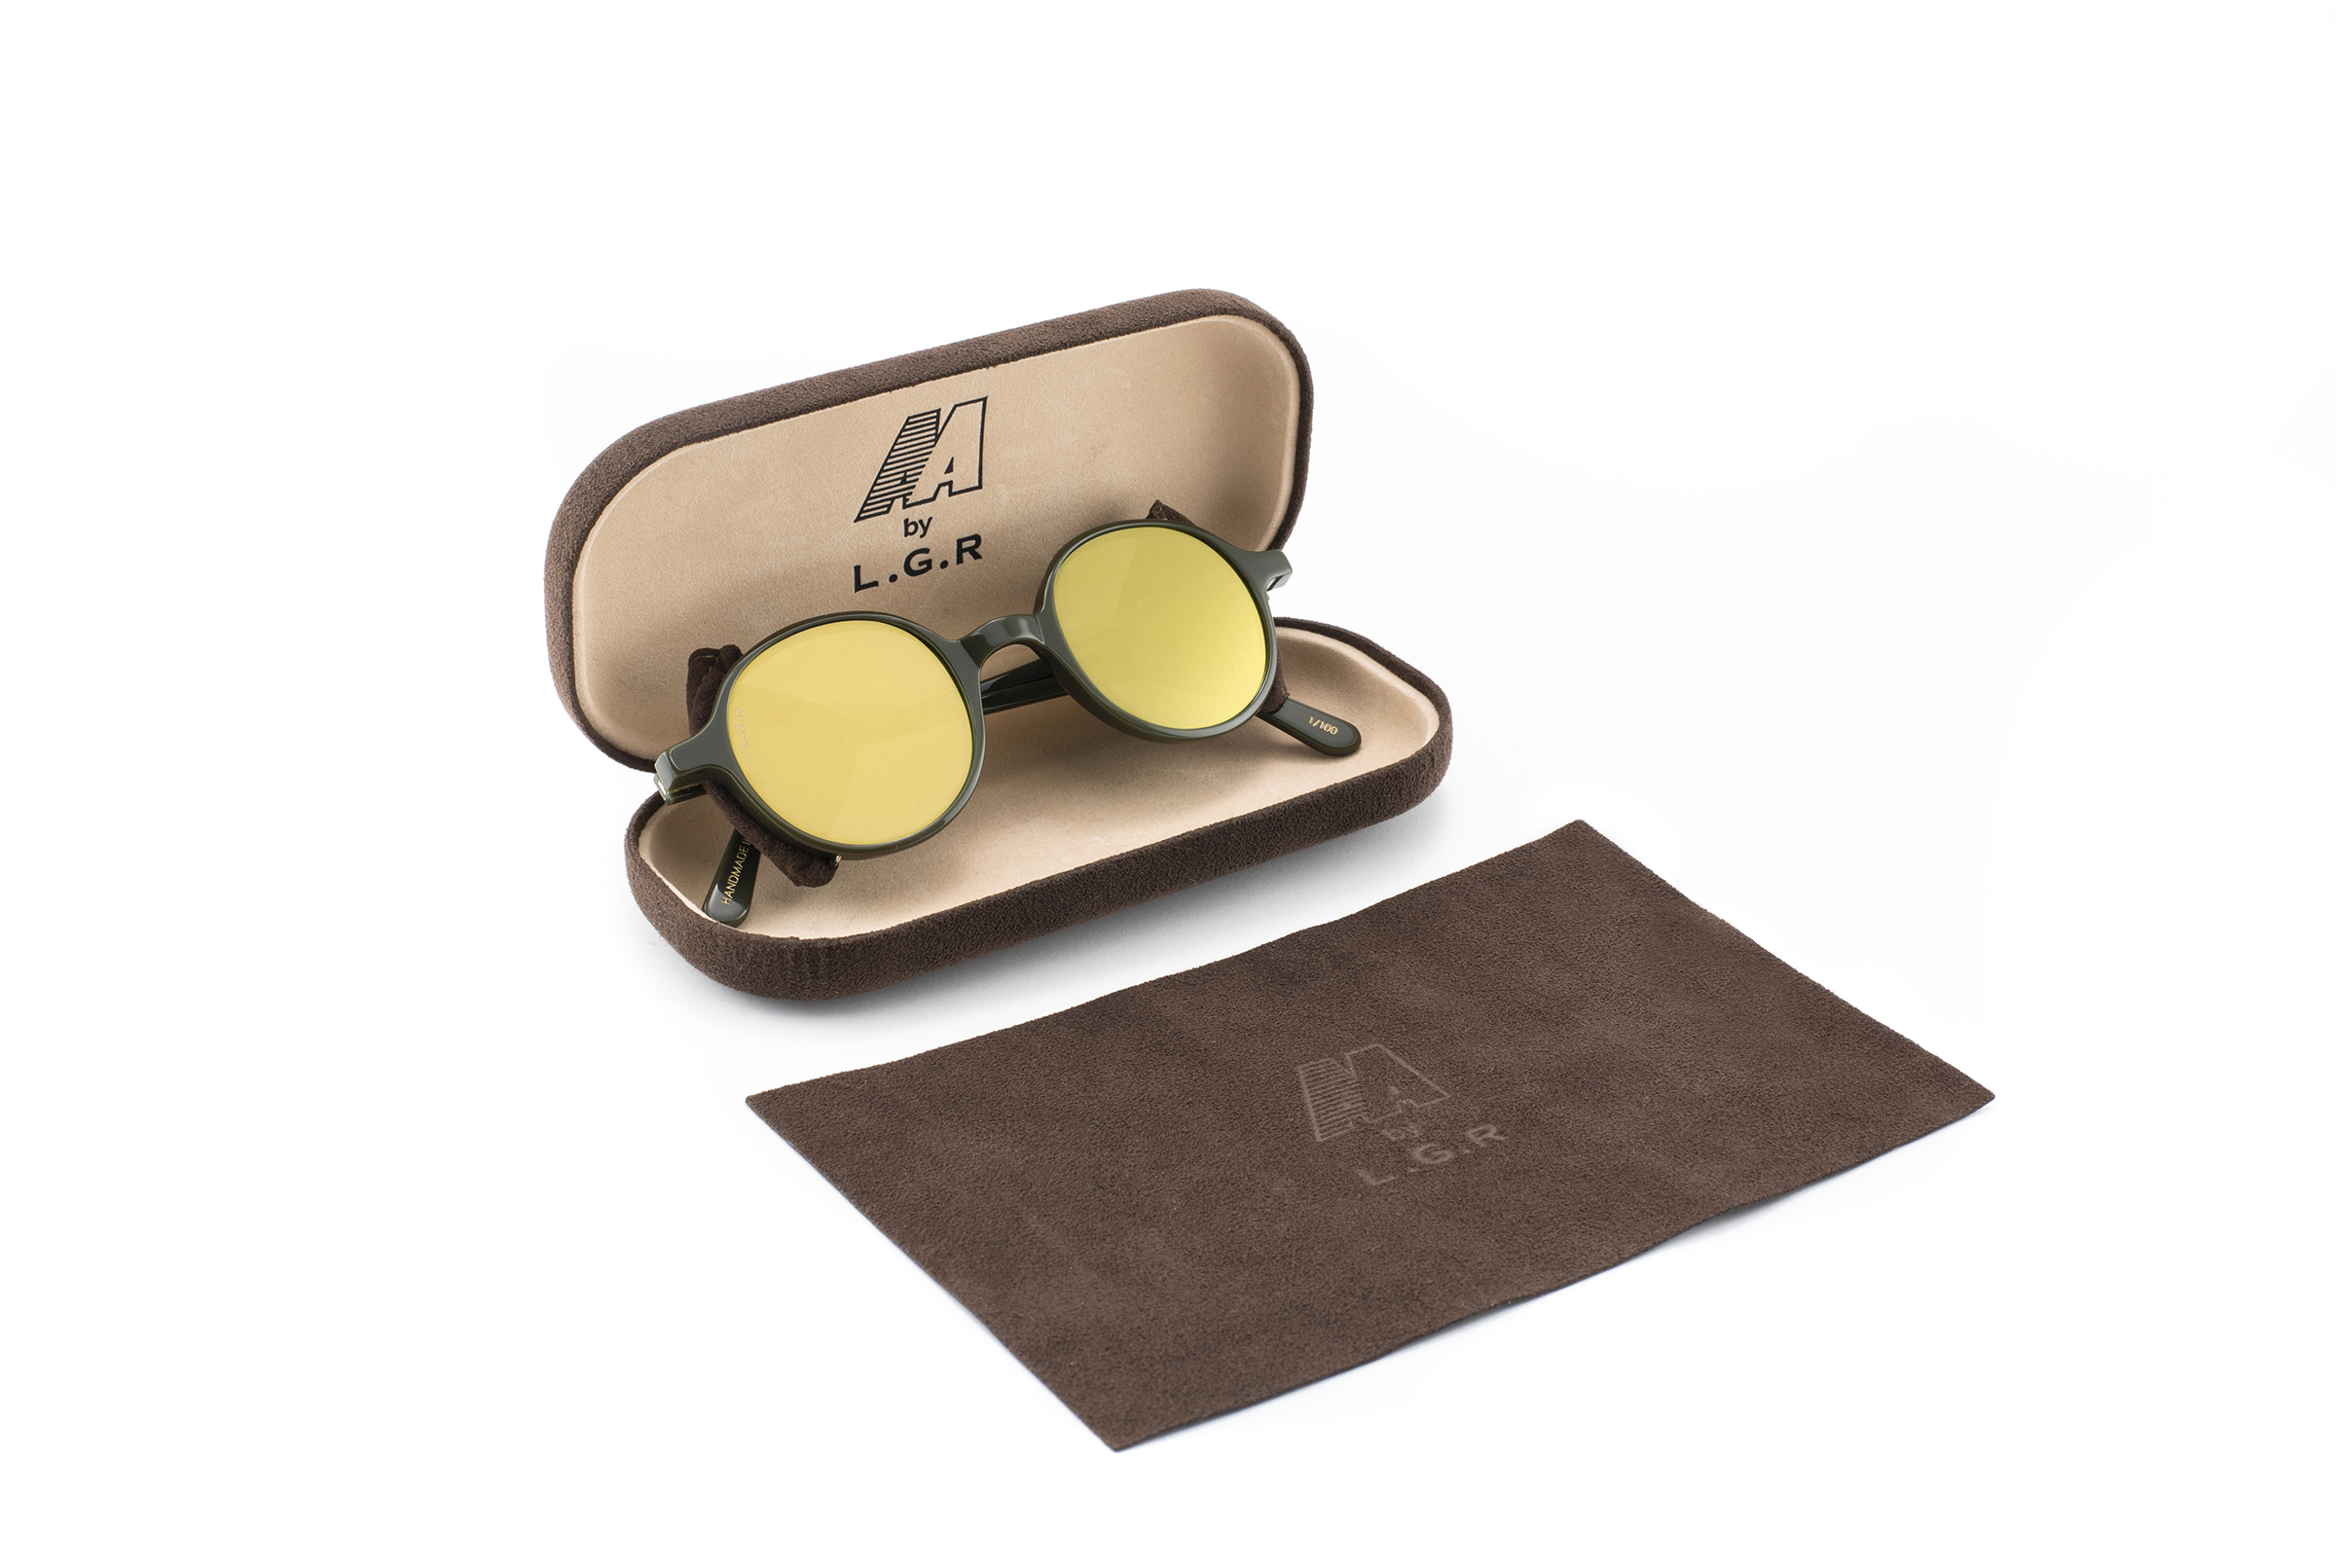 3099-REUNION FLAP AA BY L.G.R-GREEN 14-BROWN ALCANTARA-FLAT GOLD MIRROR-PACKAGING-1